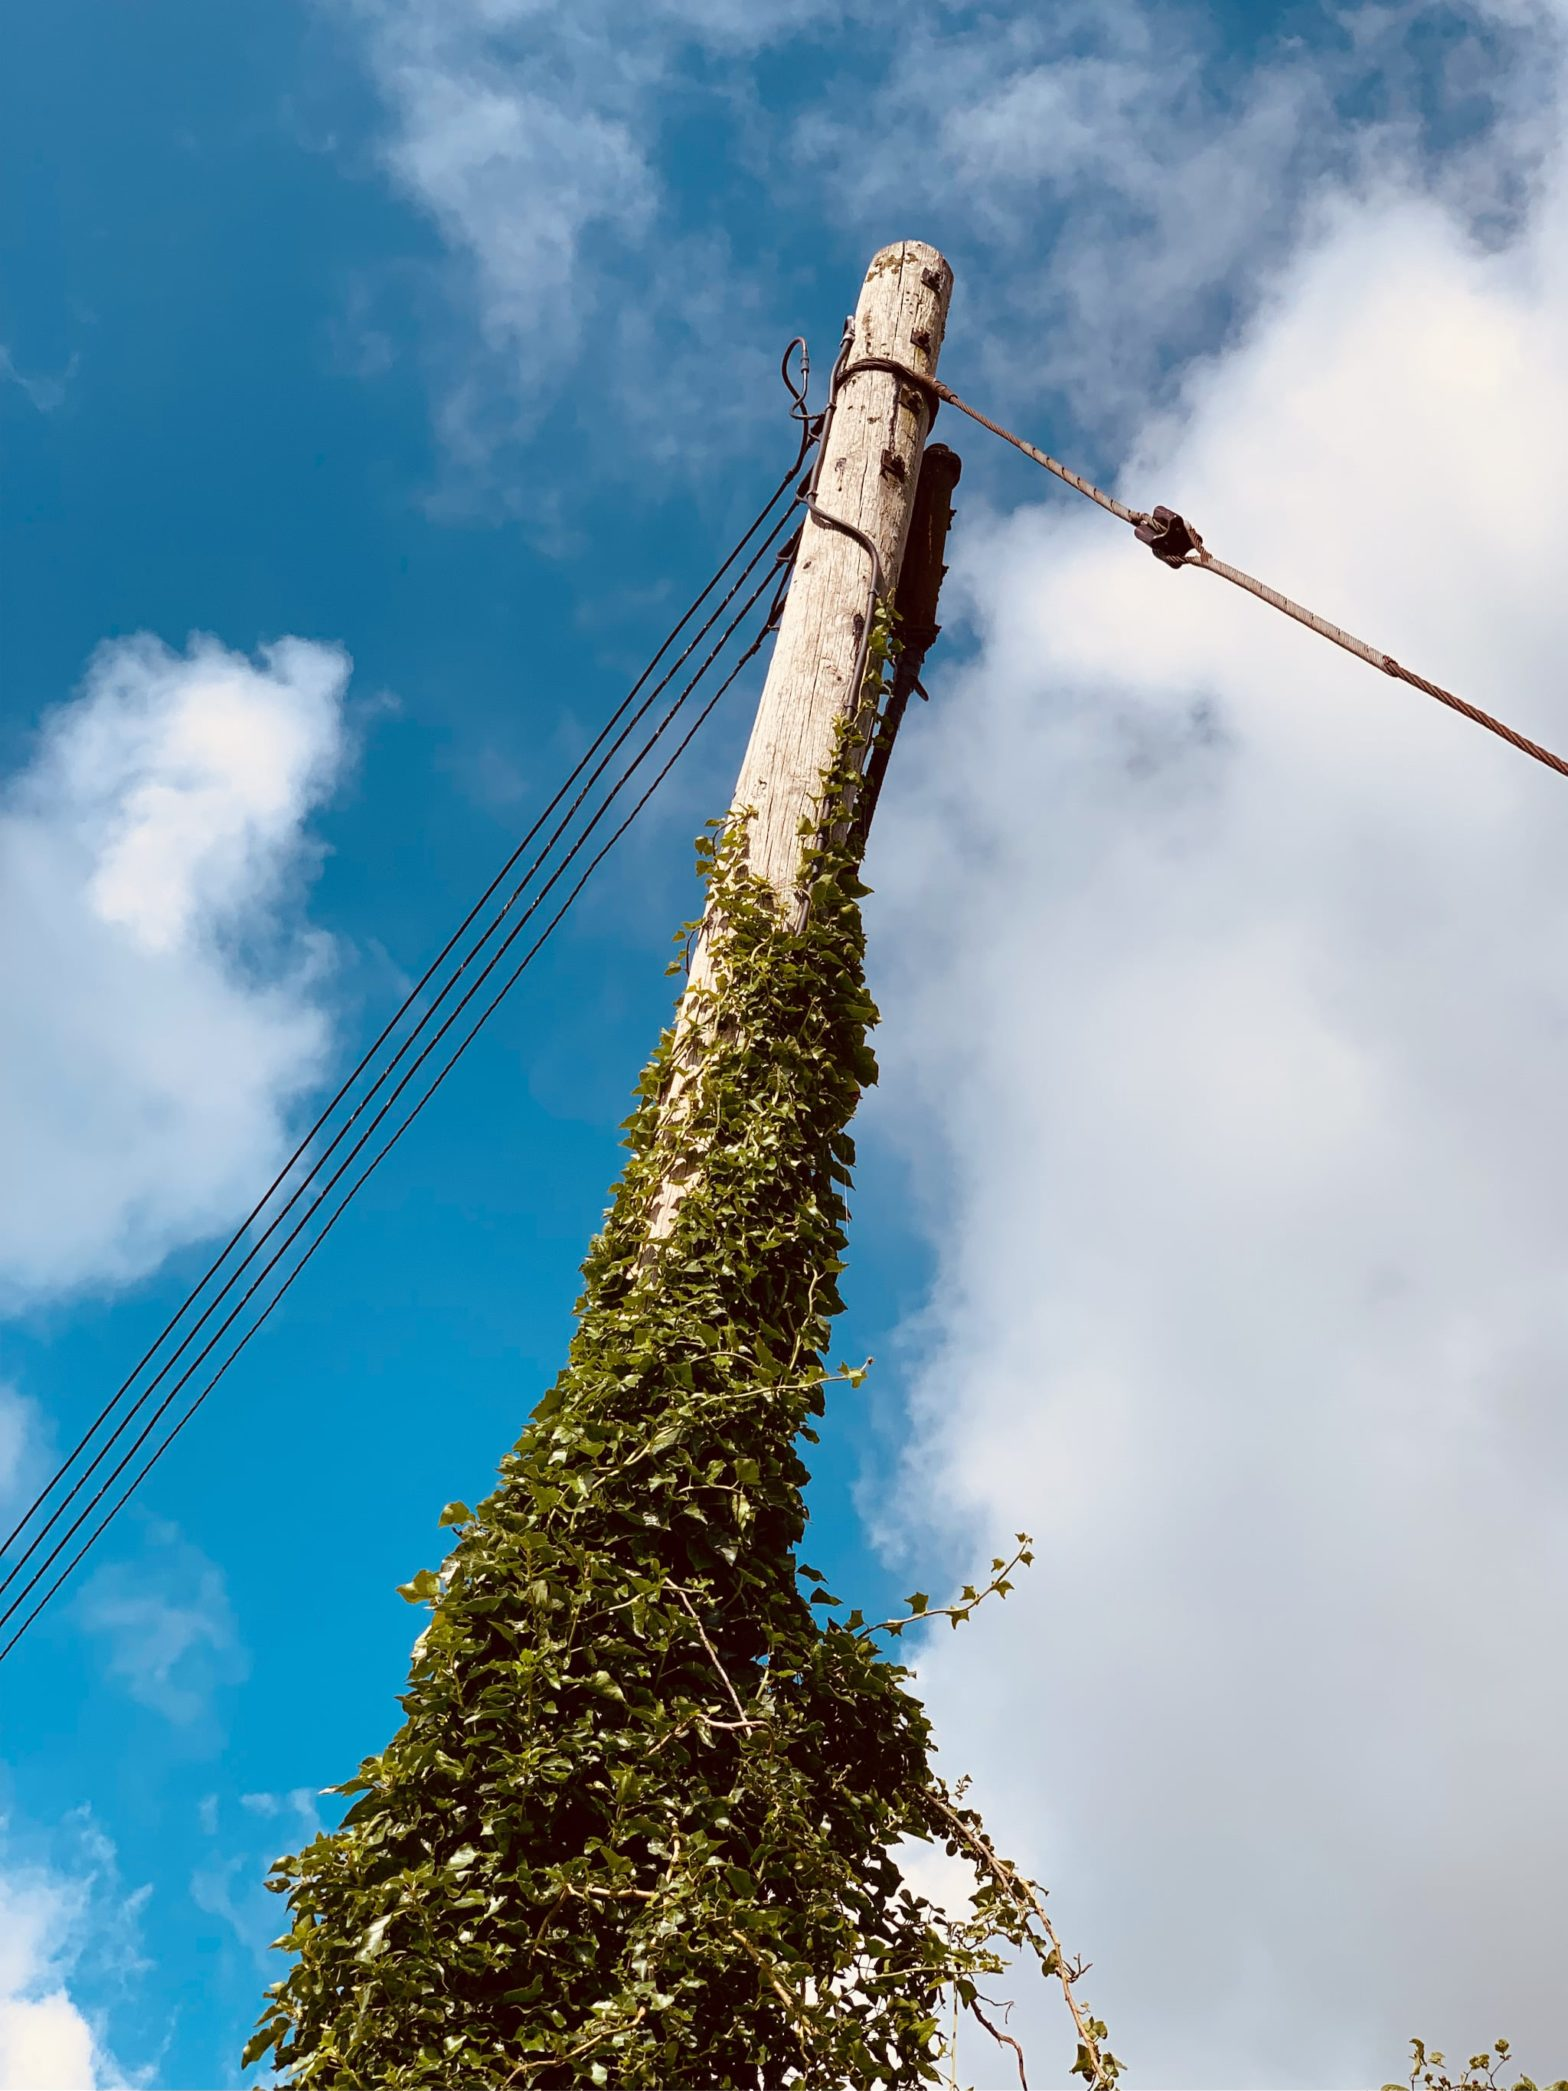 Ivy climbing up a wooden power line pole with a bright blue sky with wide clouds in the background